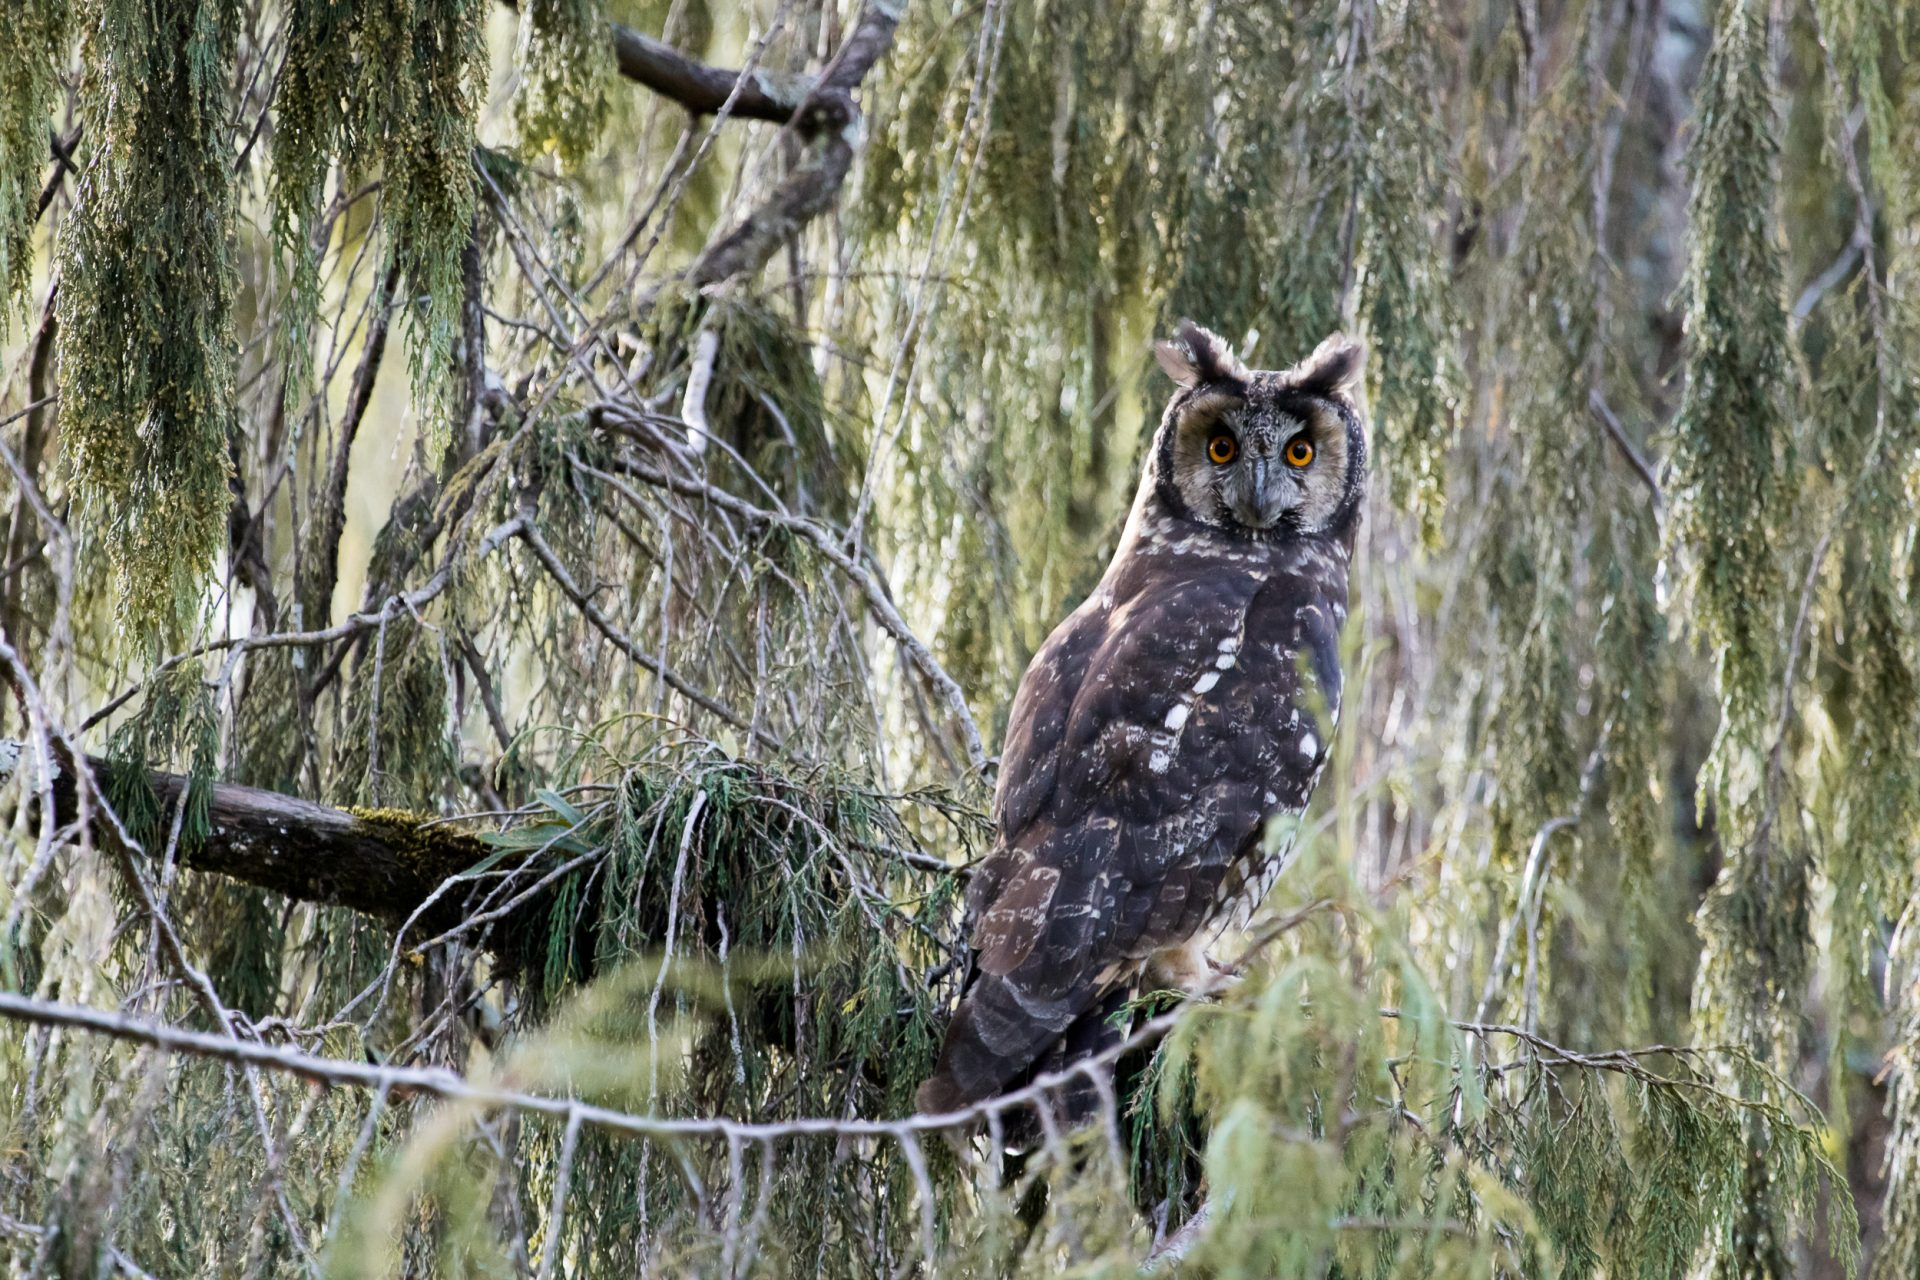 The endemic Abyssinian Owl